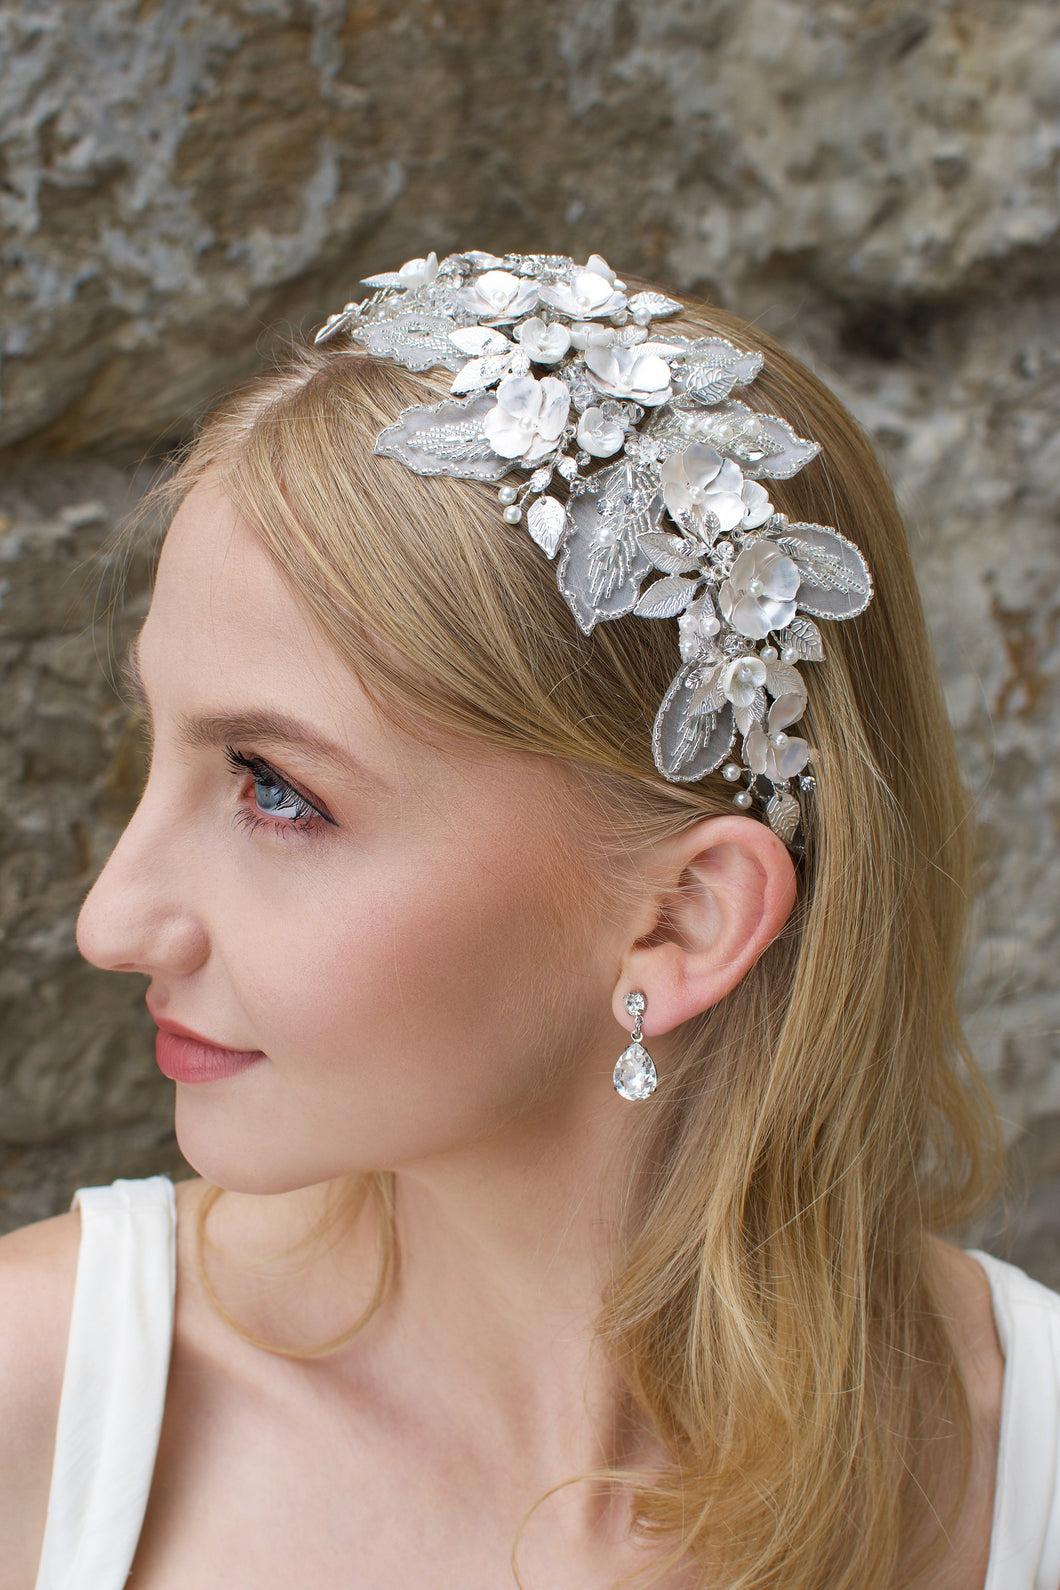 Blonde bride wearing a lace and flower headband with a stone wall backdrop